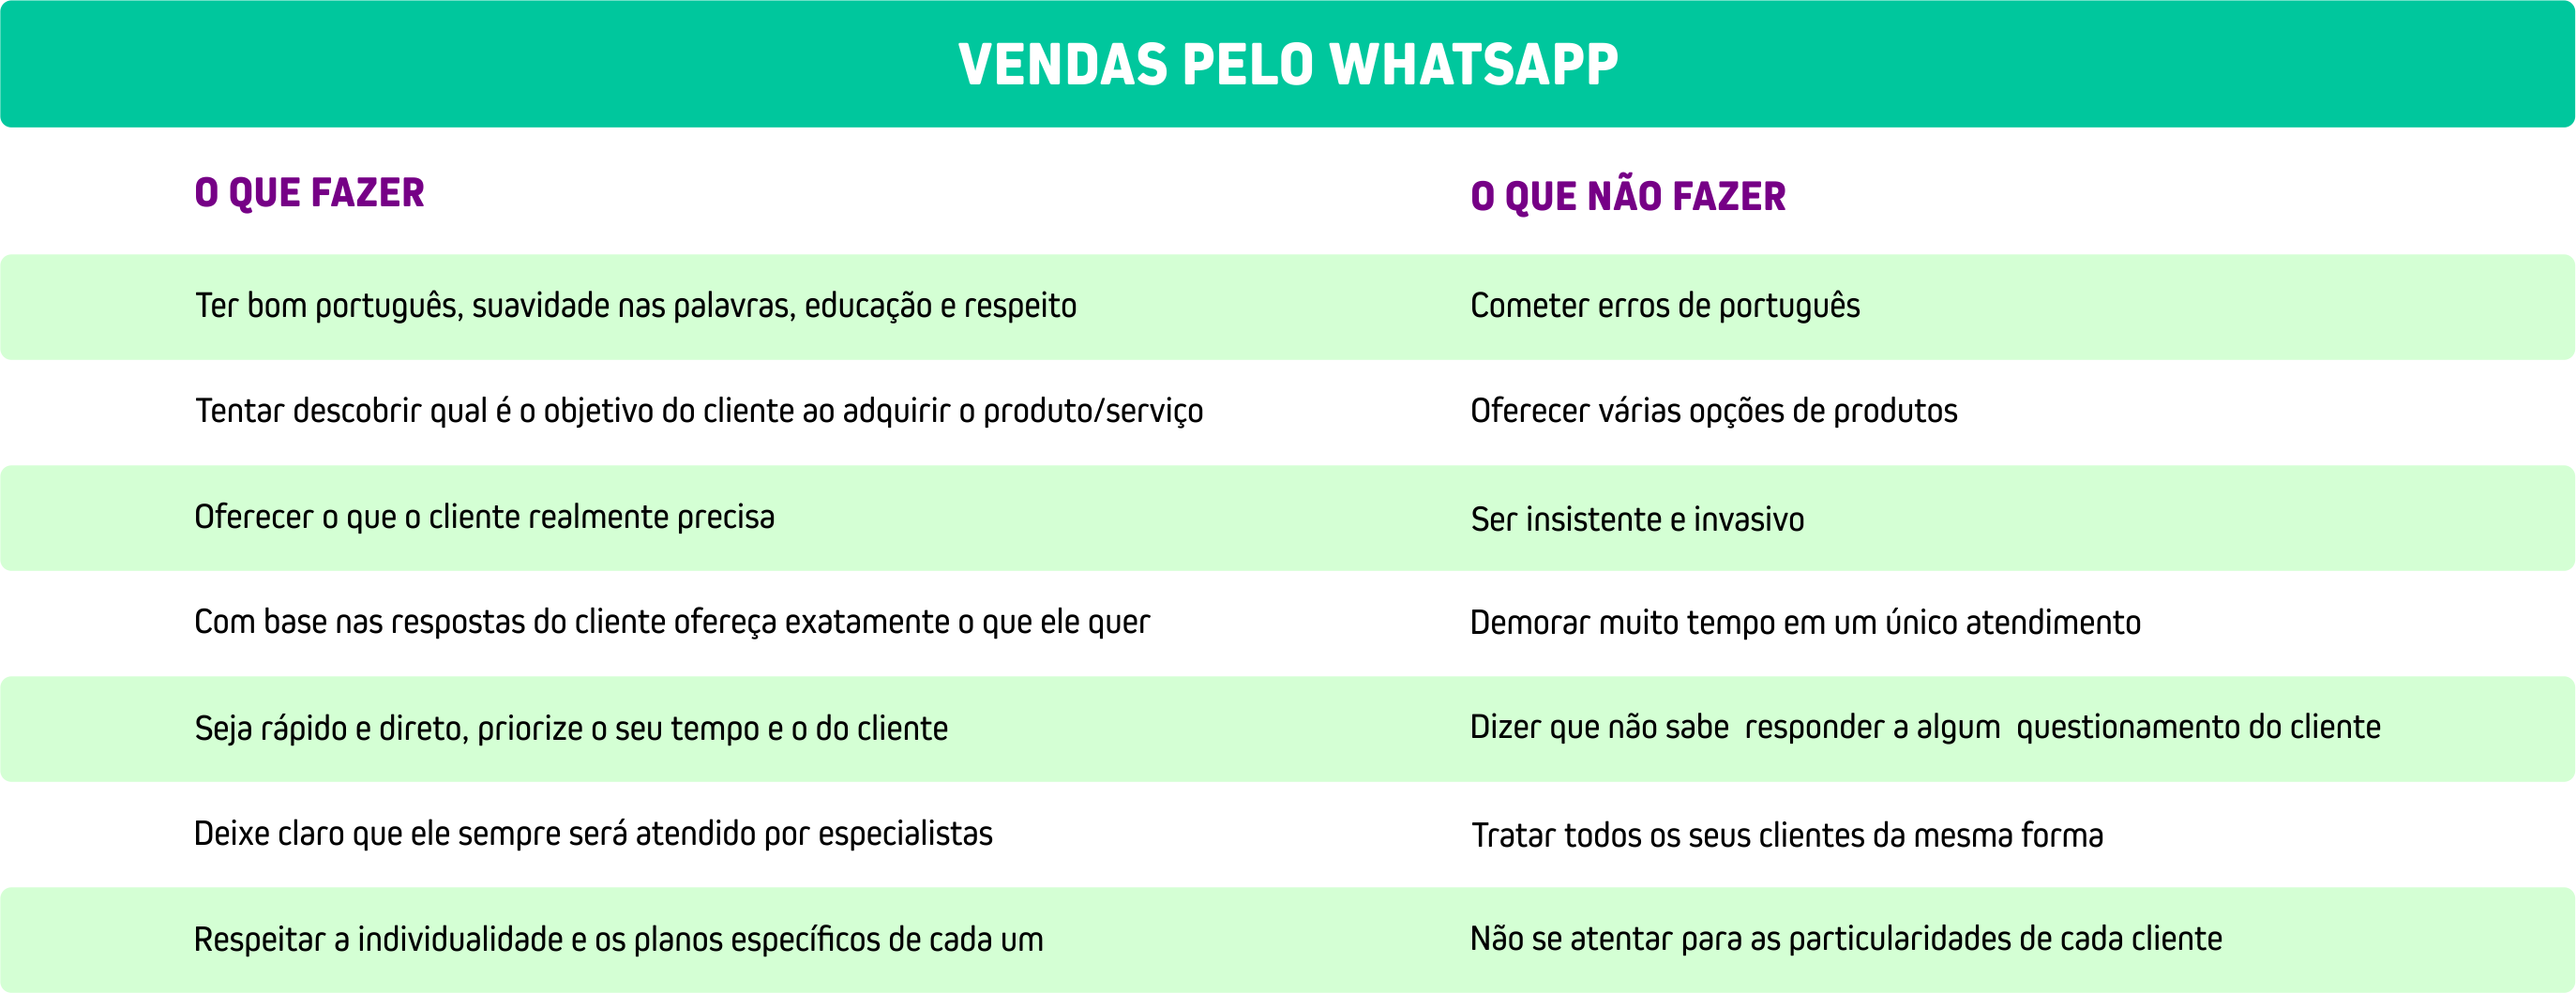 whatsapp business whatsapp para empresas